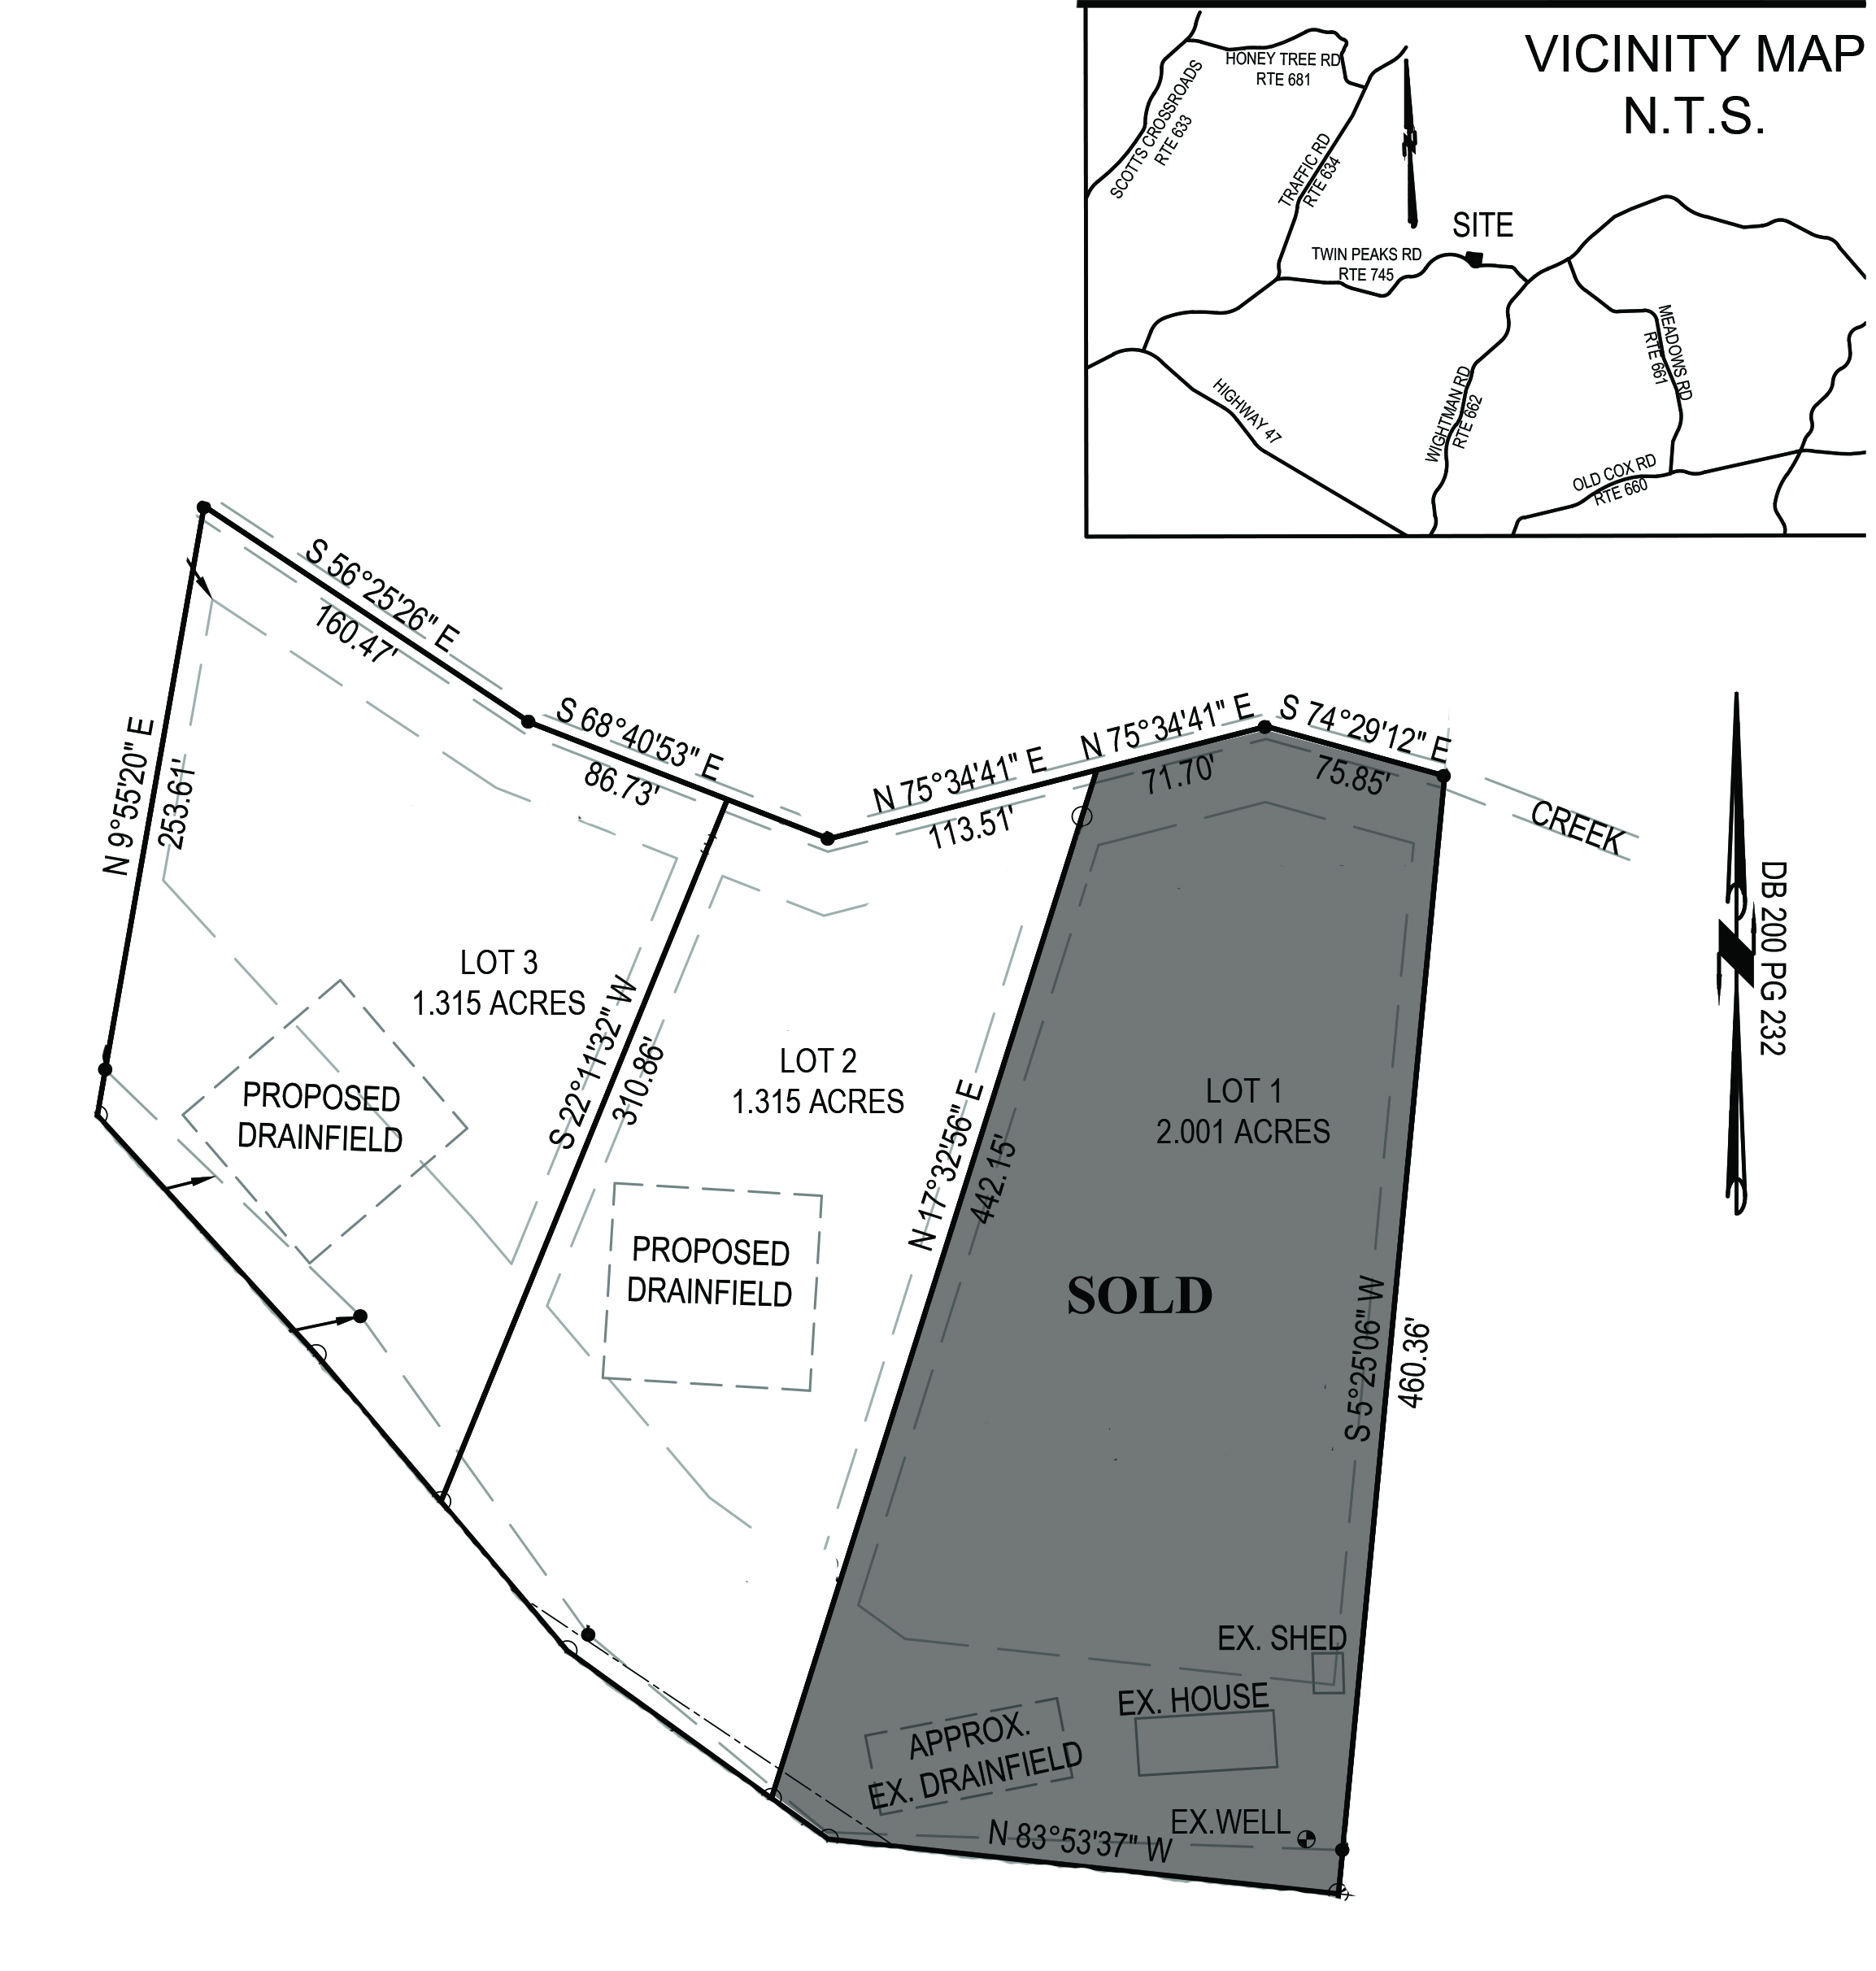 Land for Sale in Chase City on Twin Peaks Road